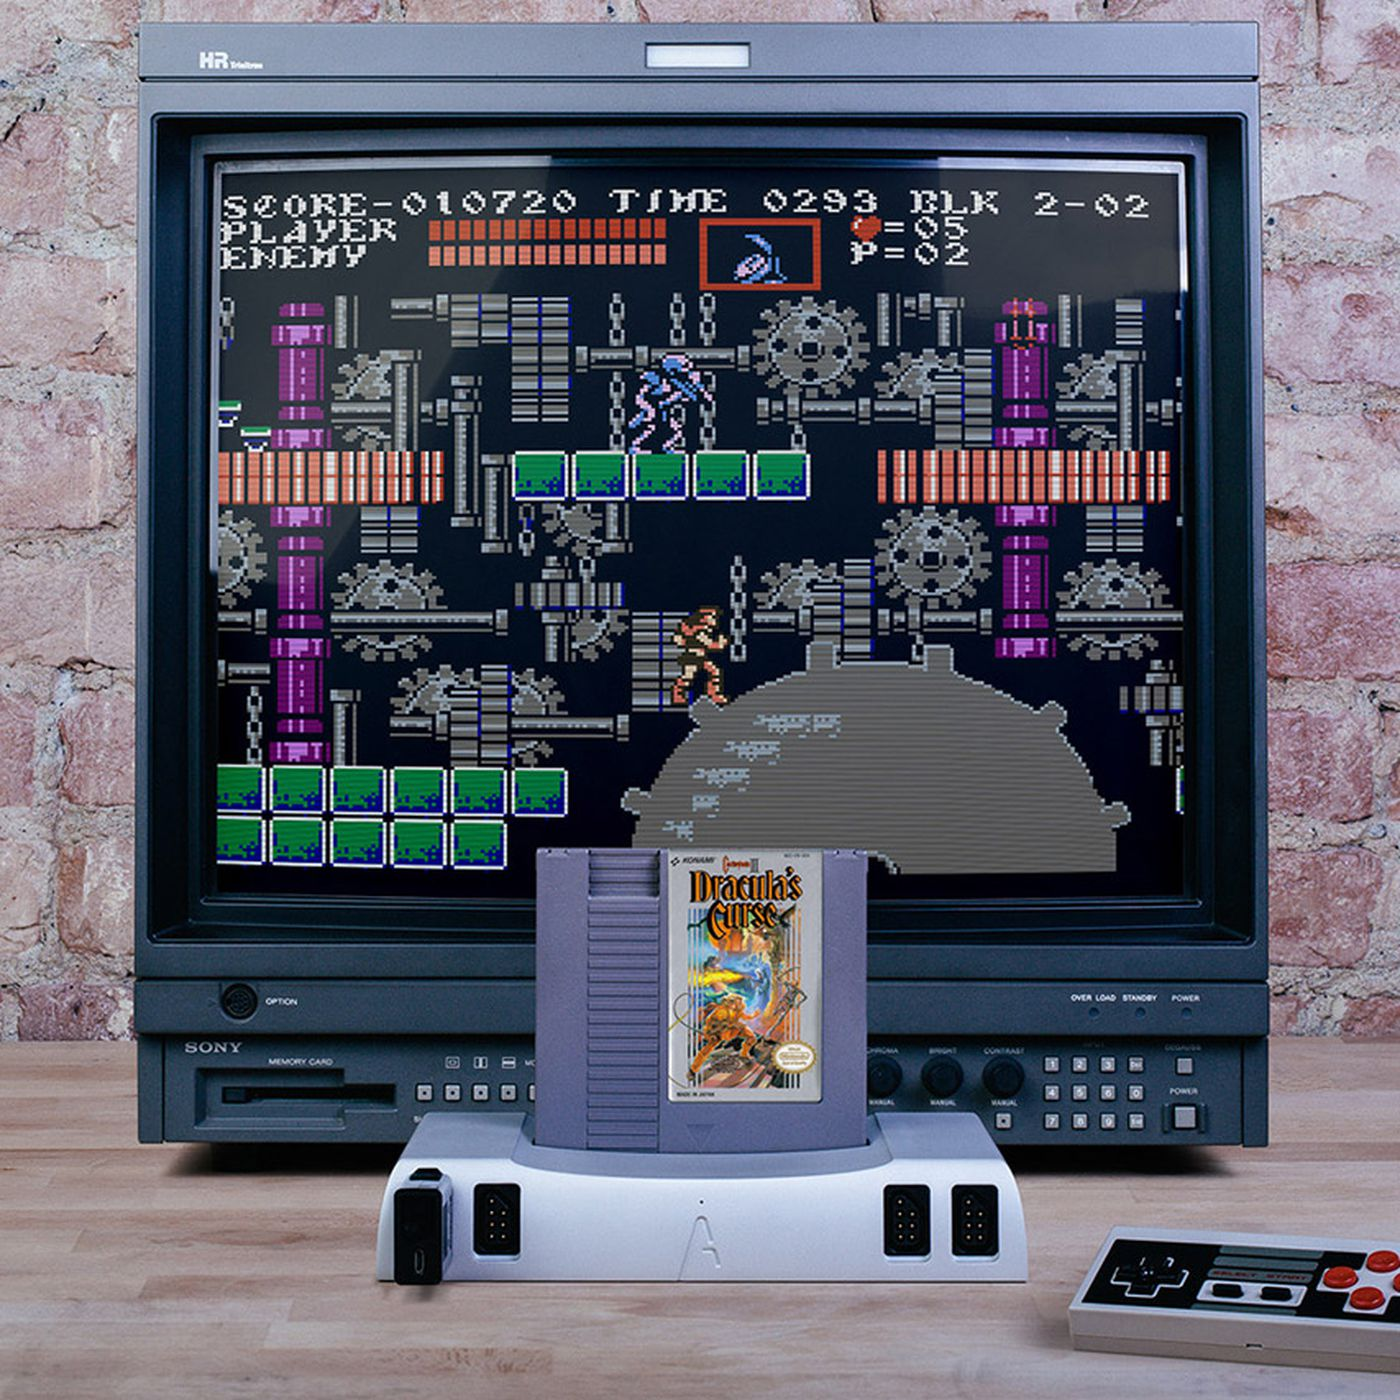 Aluminum NES maker announces smaller, cheaper Analogue Nt